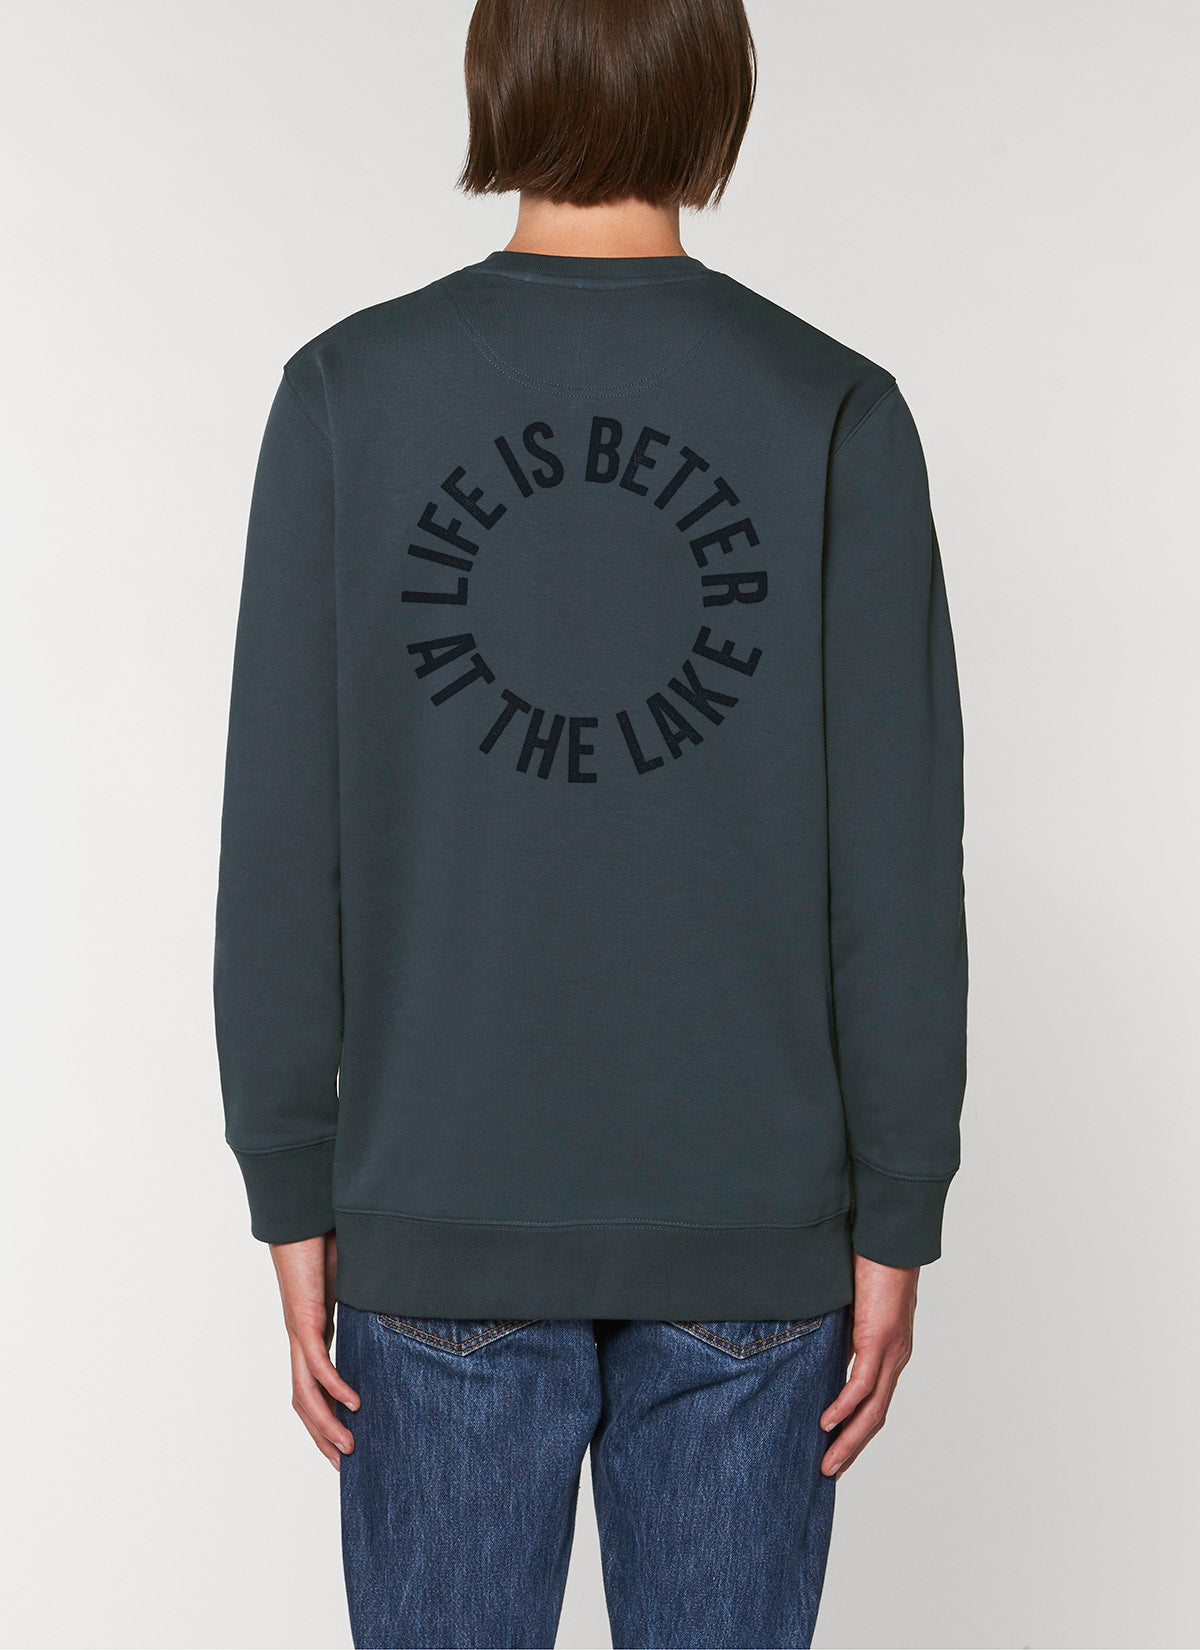 "Sweatshirt ""Life is better at the lake"" - Dunkelgrau - unisex"